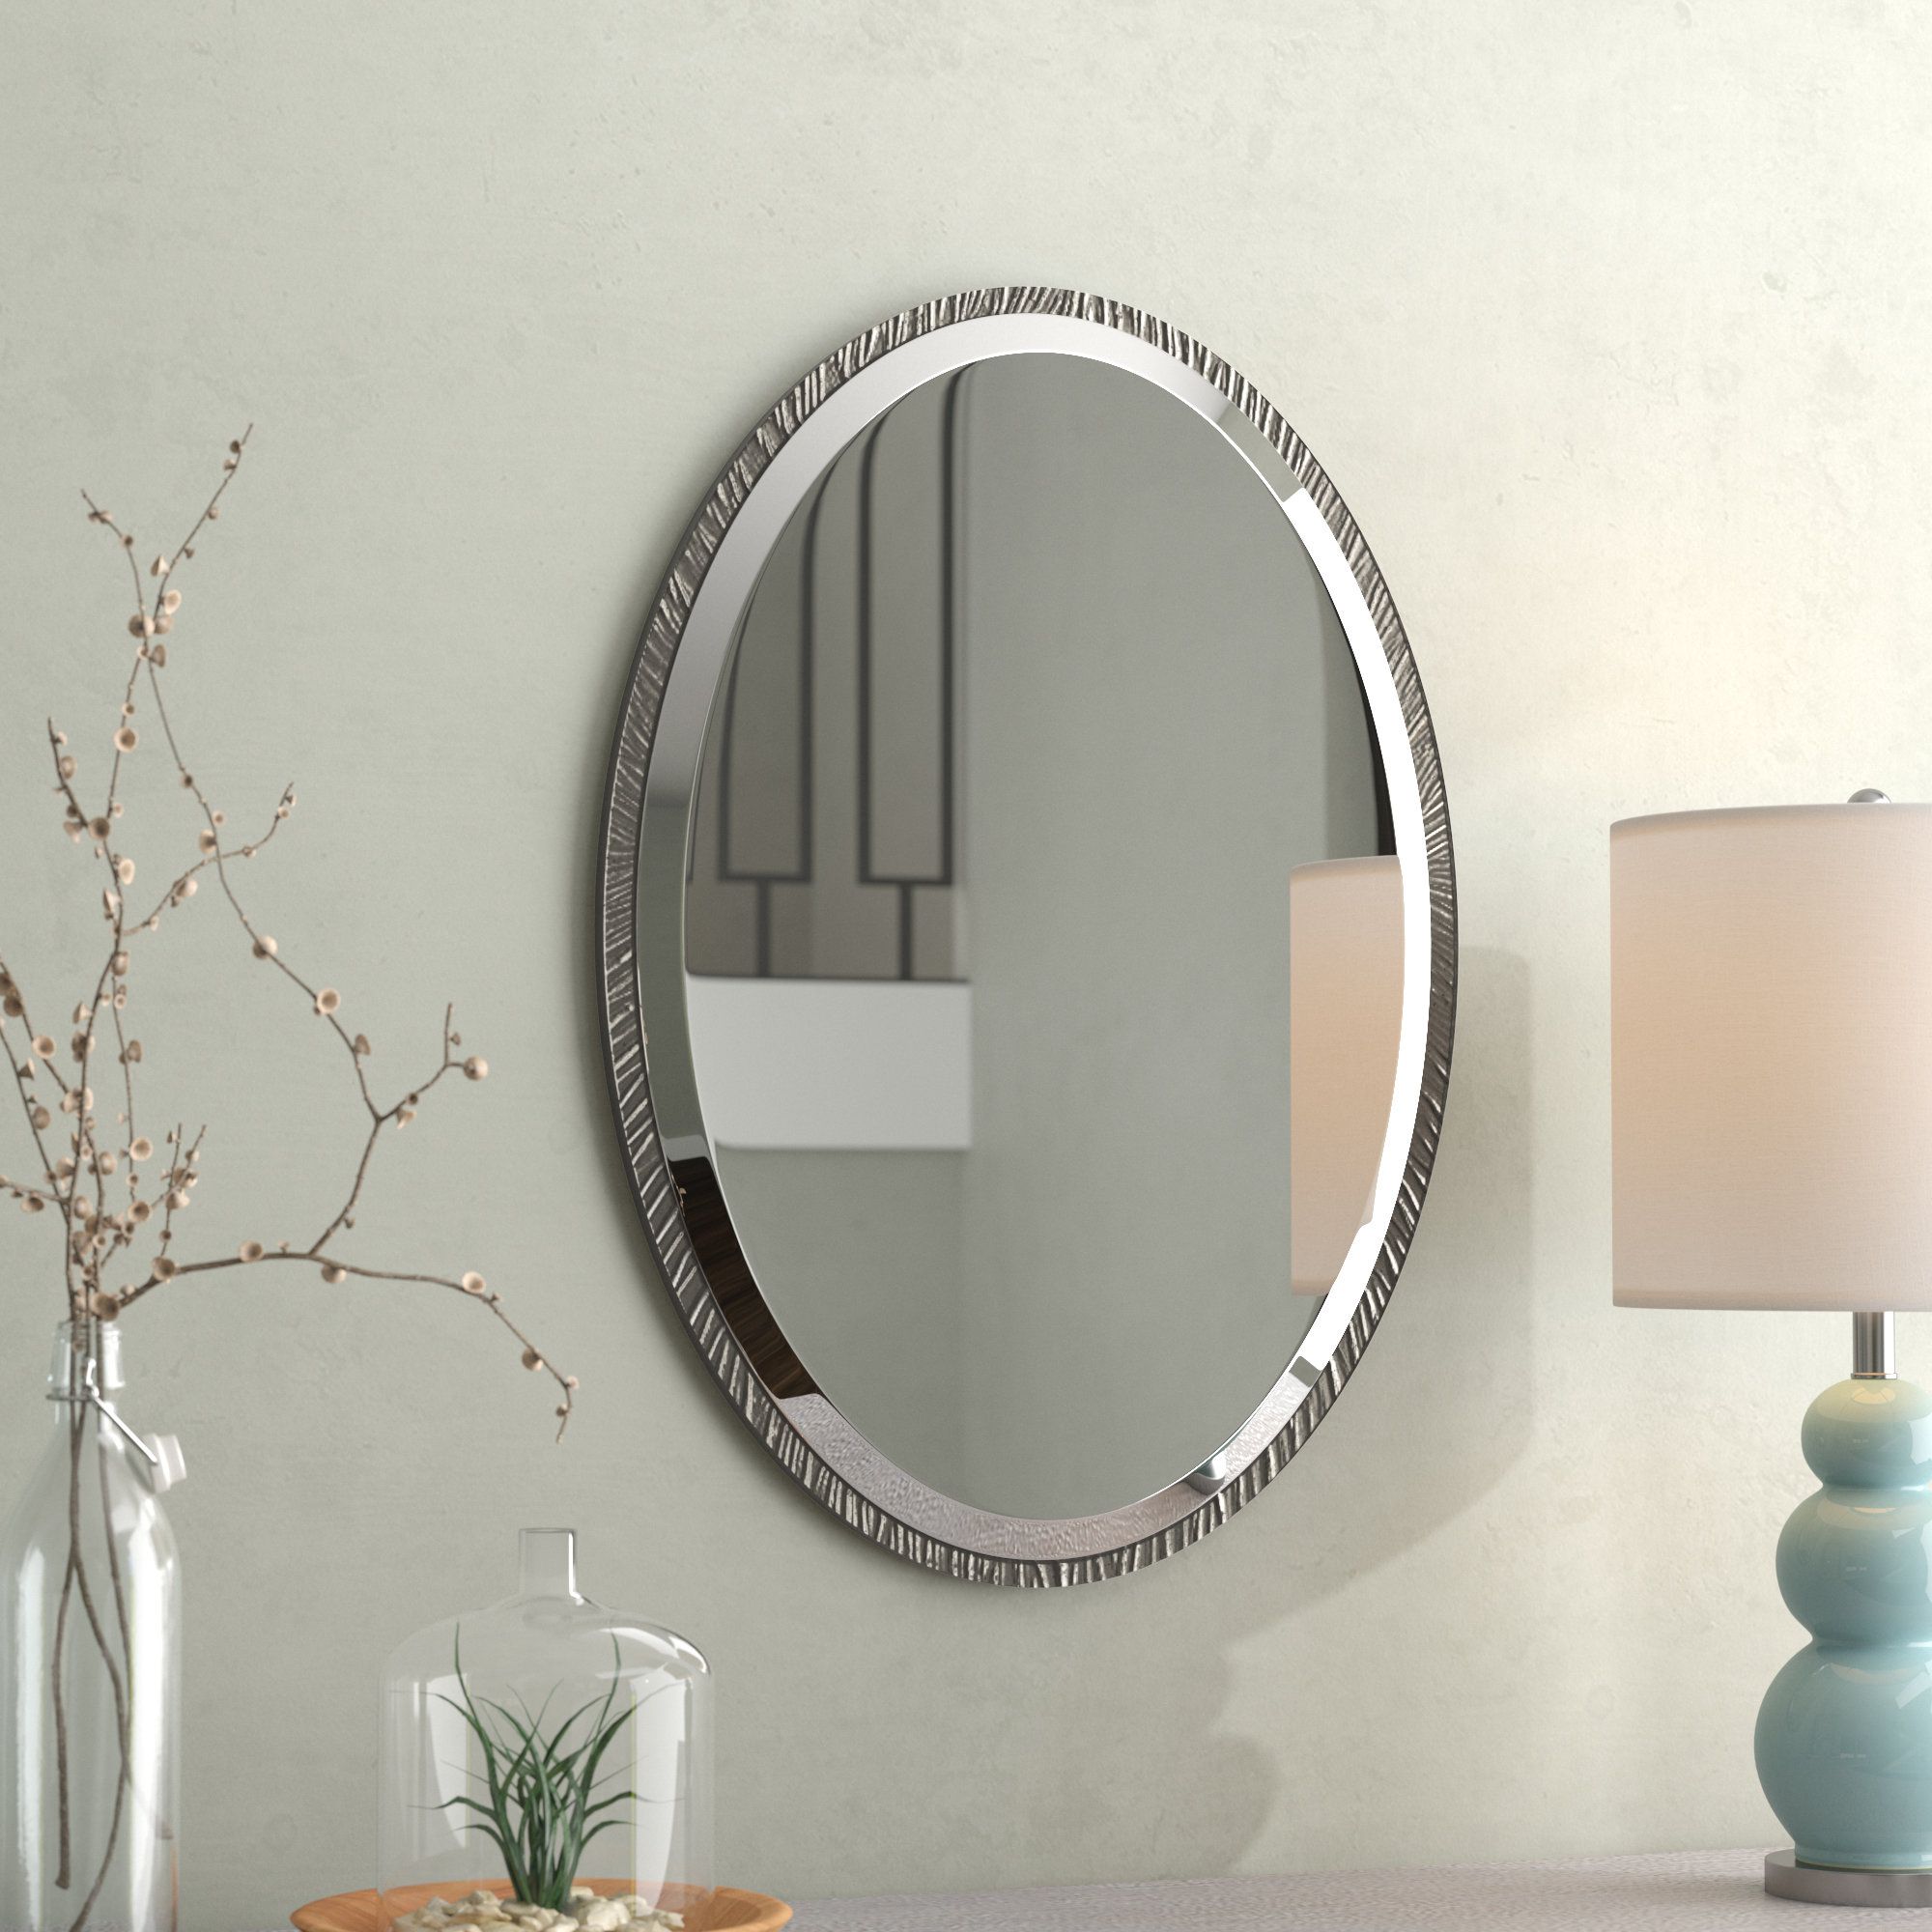 Oval Ornate Wall Mirror | Wayfair Regarding Sajish Oval Crystal Wall Mirrors (View 18 of 30)